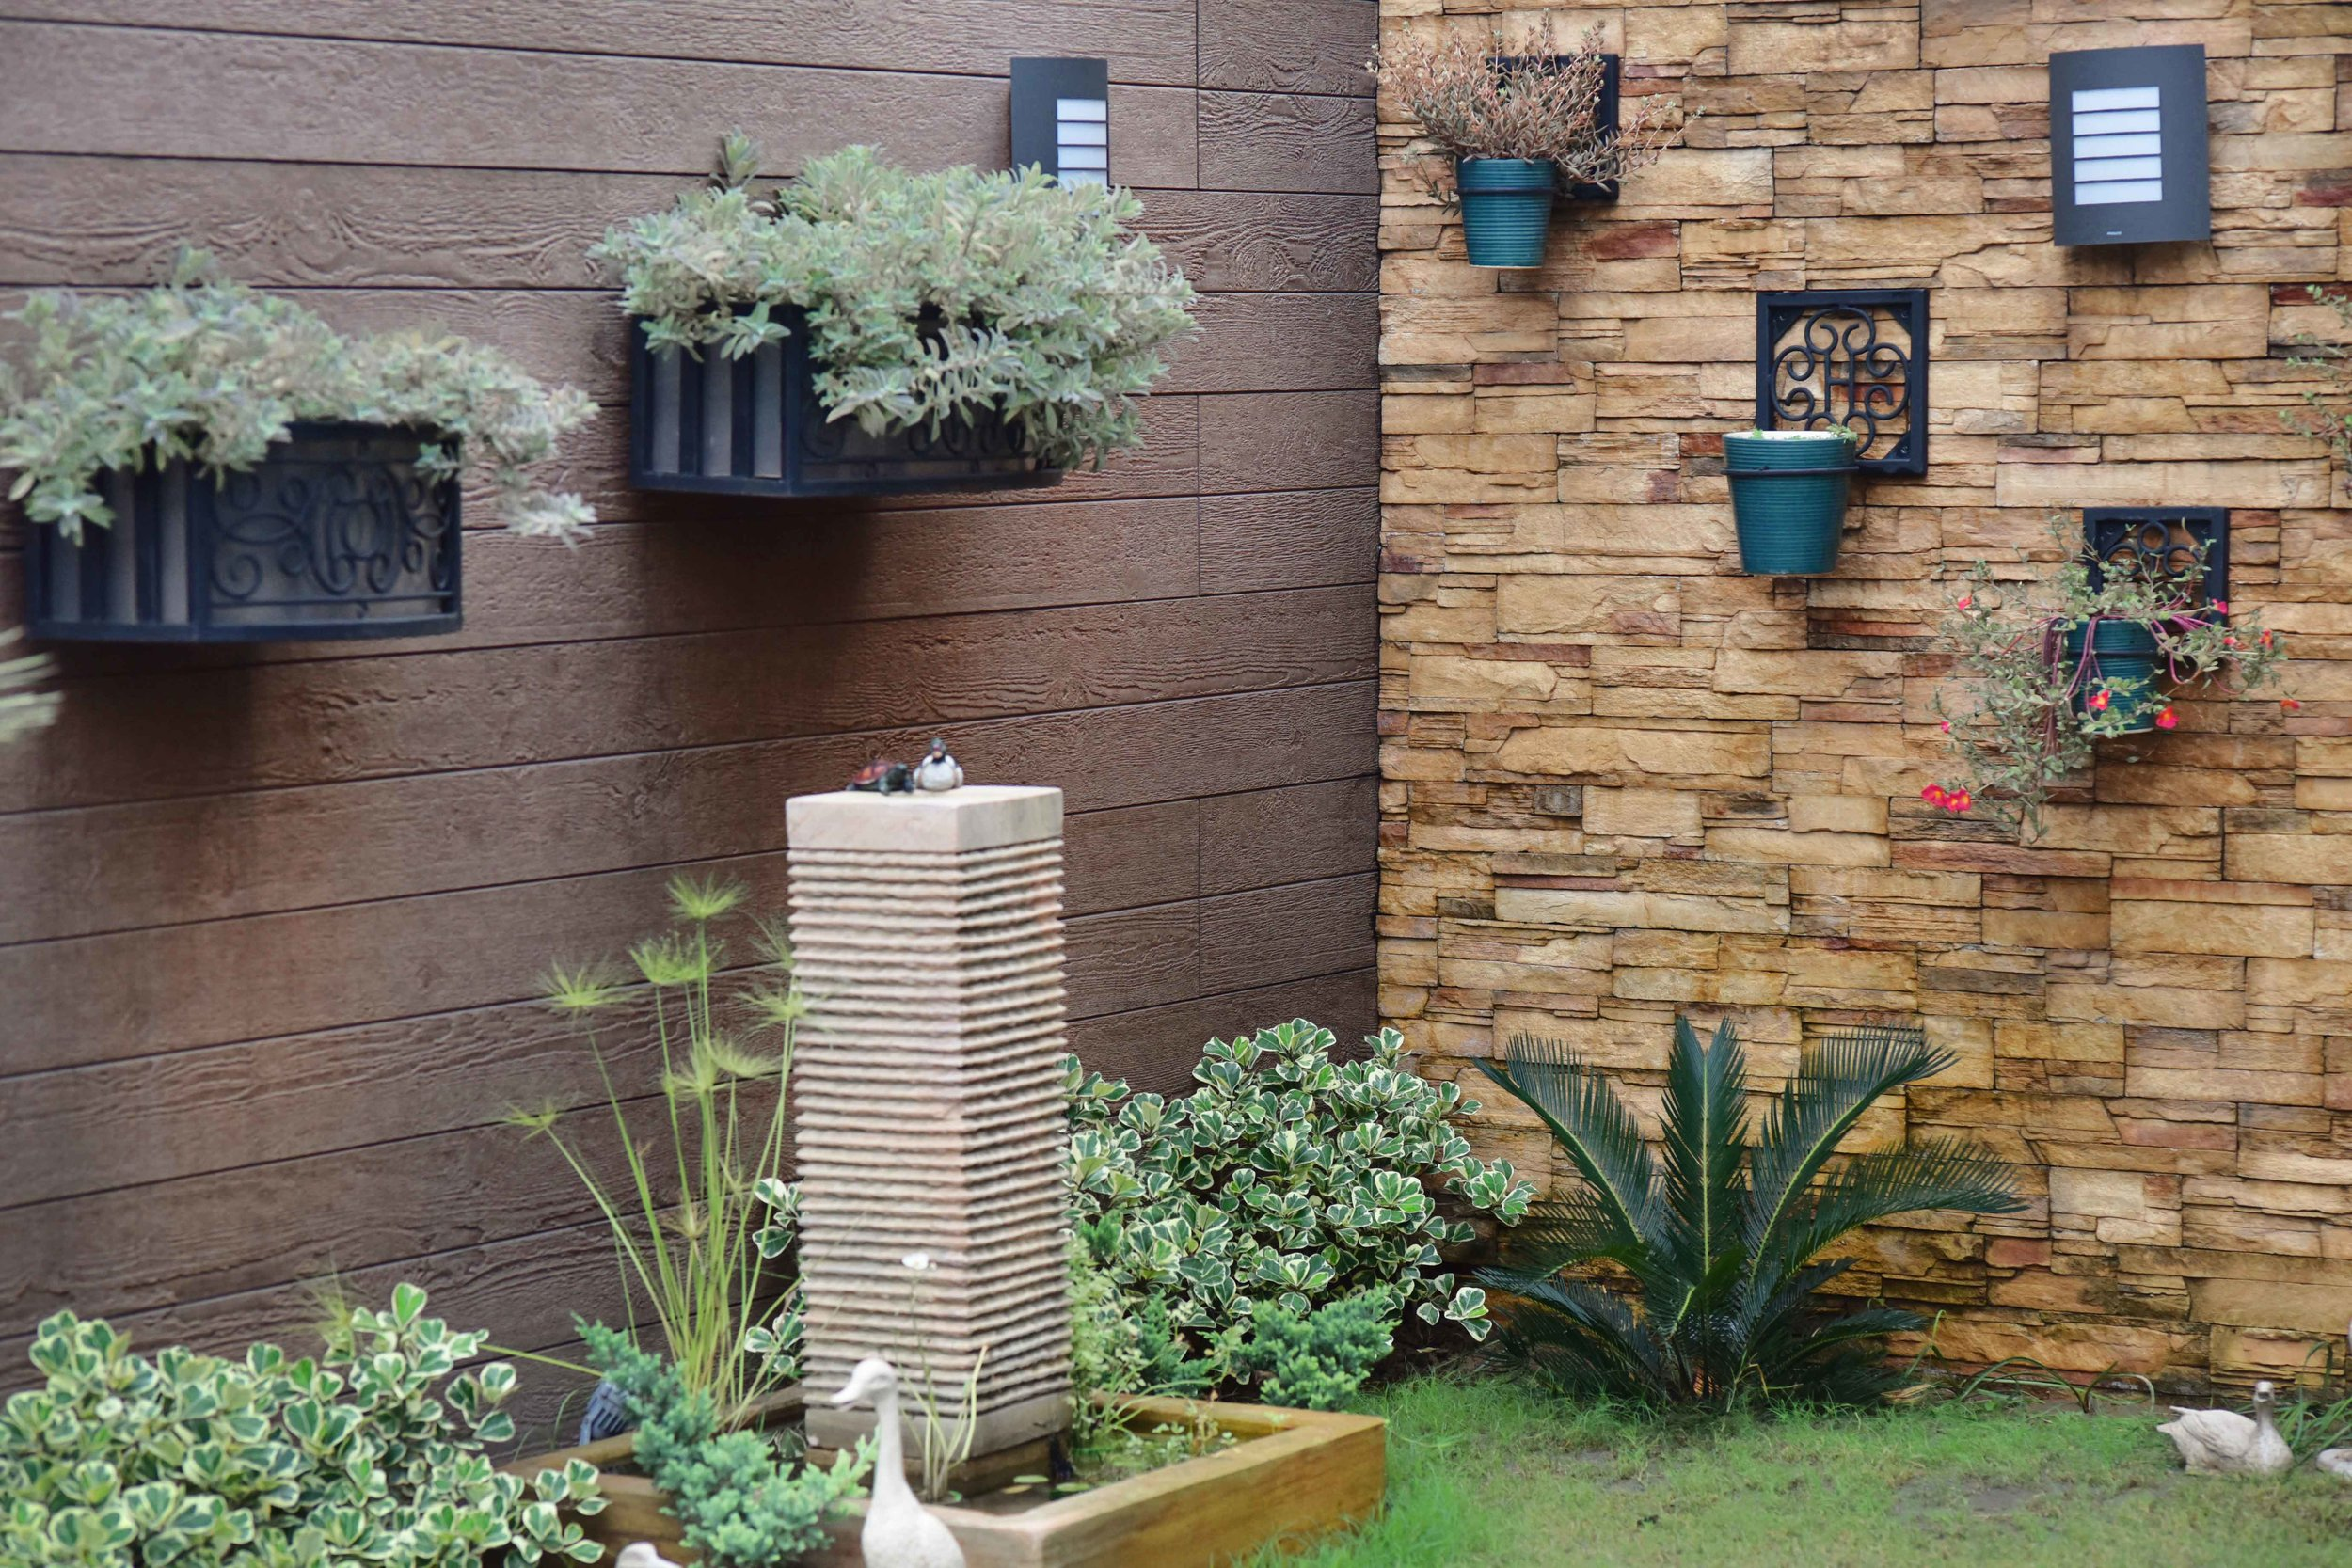 Landscape design by Geeta Singh, wall tiles, wall planters, water fountain. Image©sourcingstyle.com